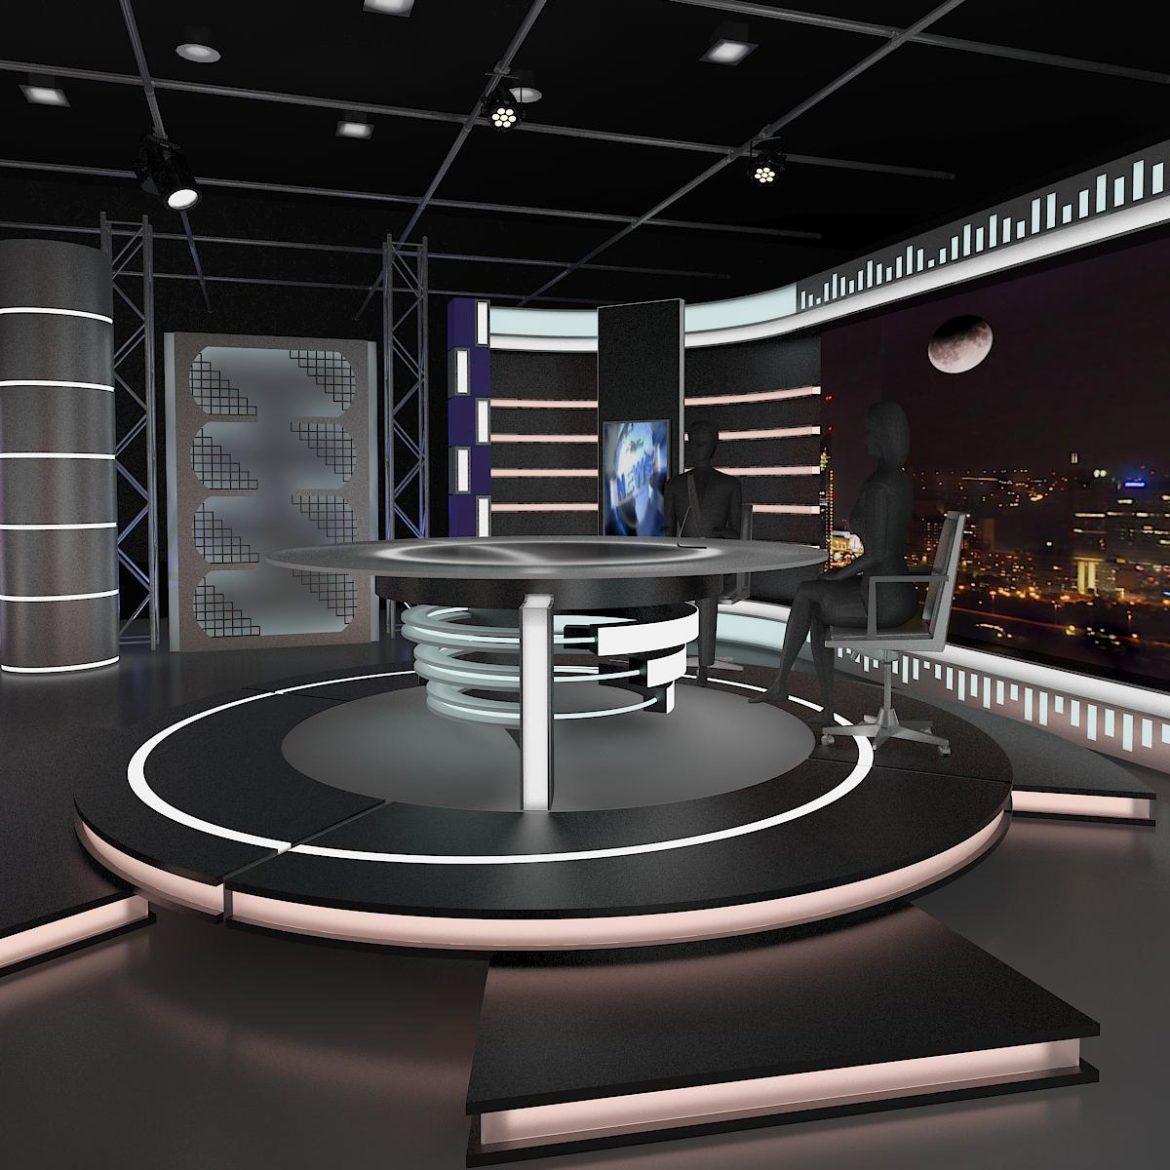 virtual tv studio news set 6 3d model 3ds c4d dxf fbx max obj 305594